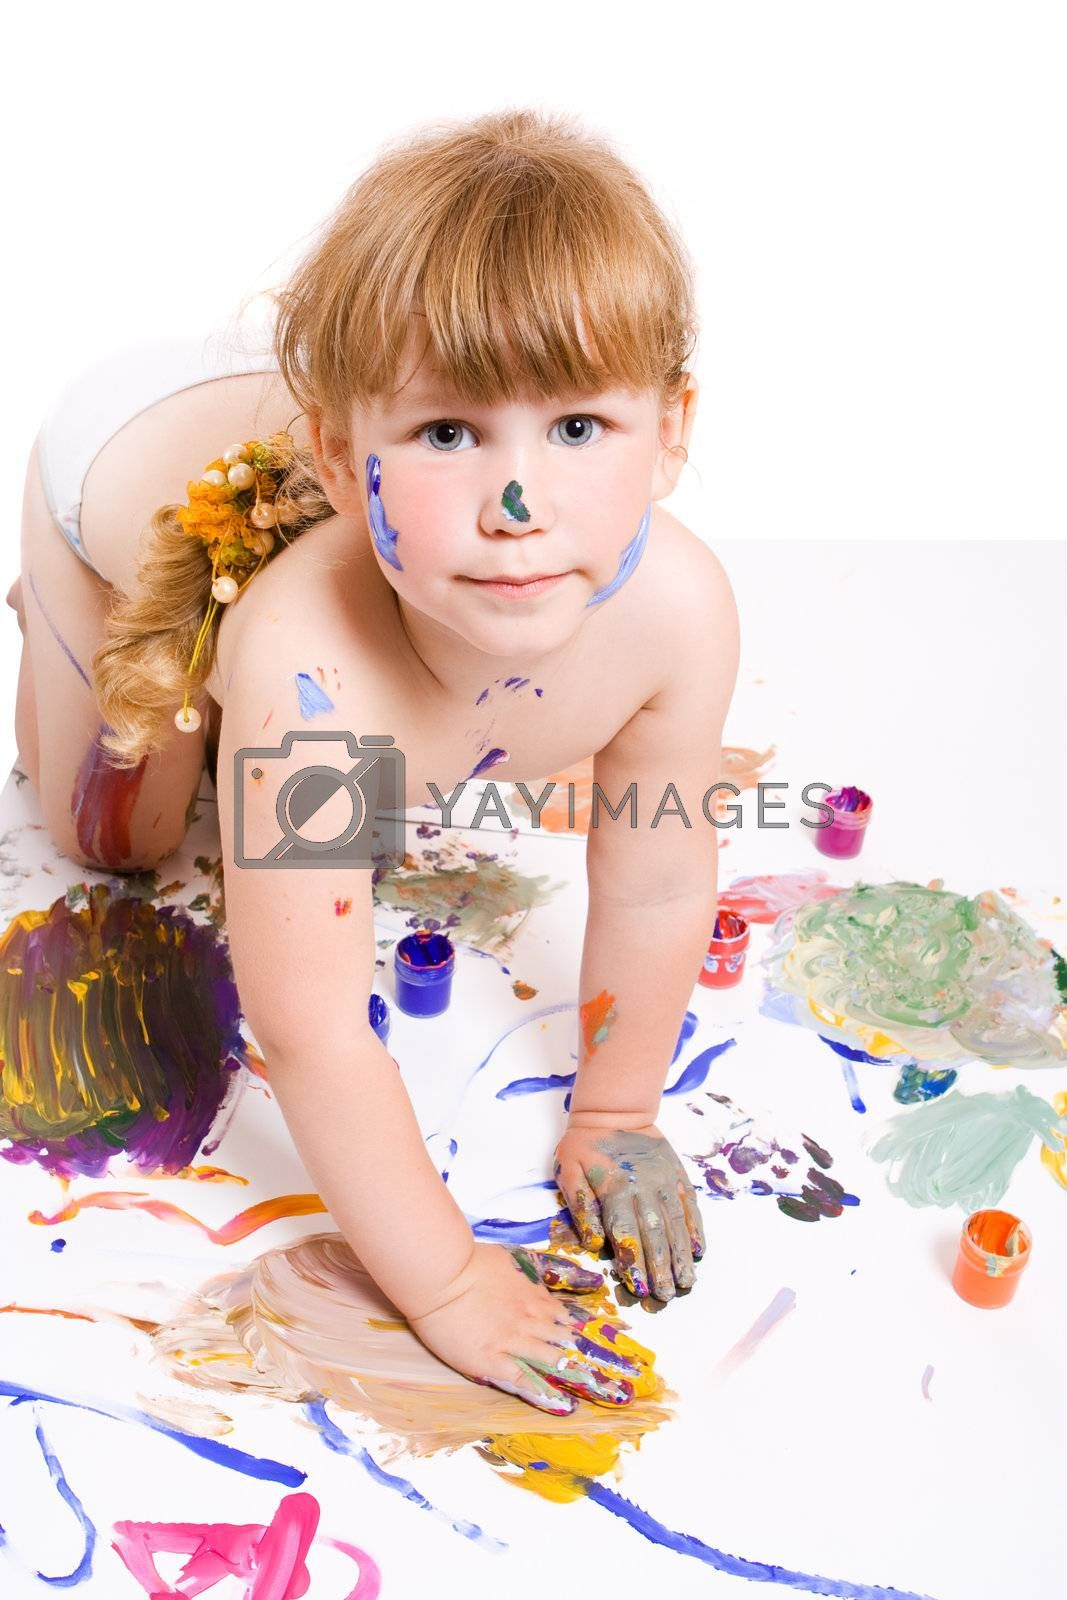 a girl with dirty face and hands of color paint seat on the dirty floor